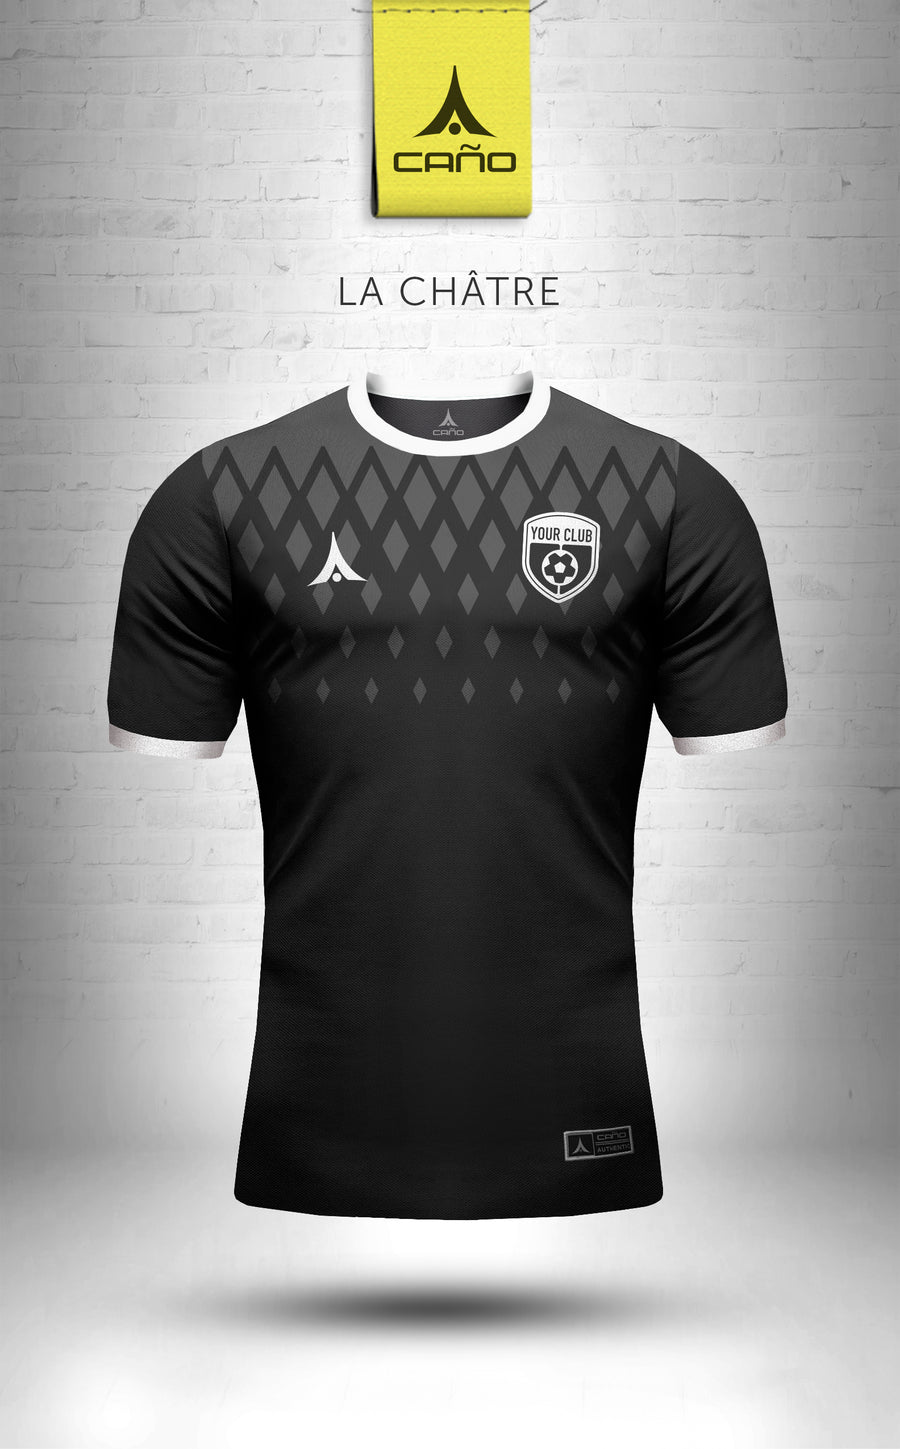 La Chatre in black/white